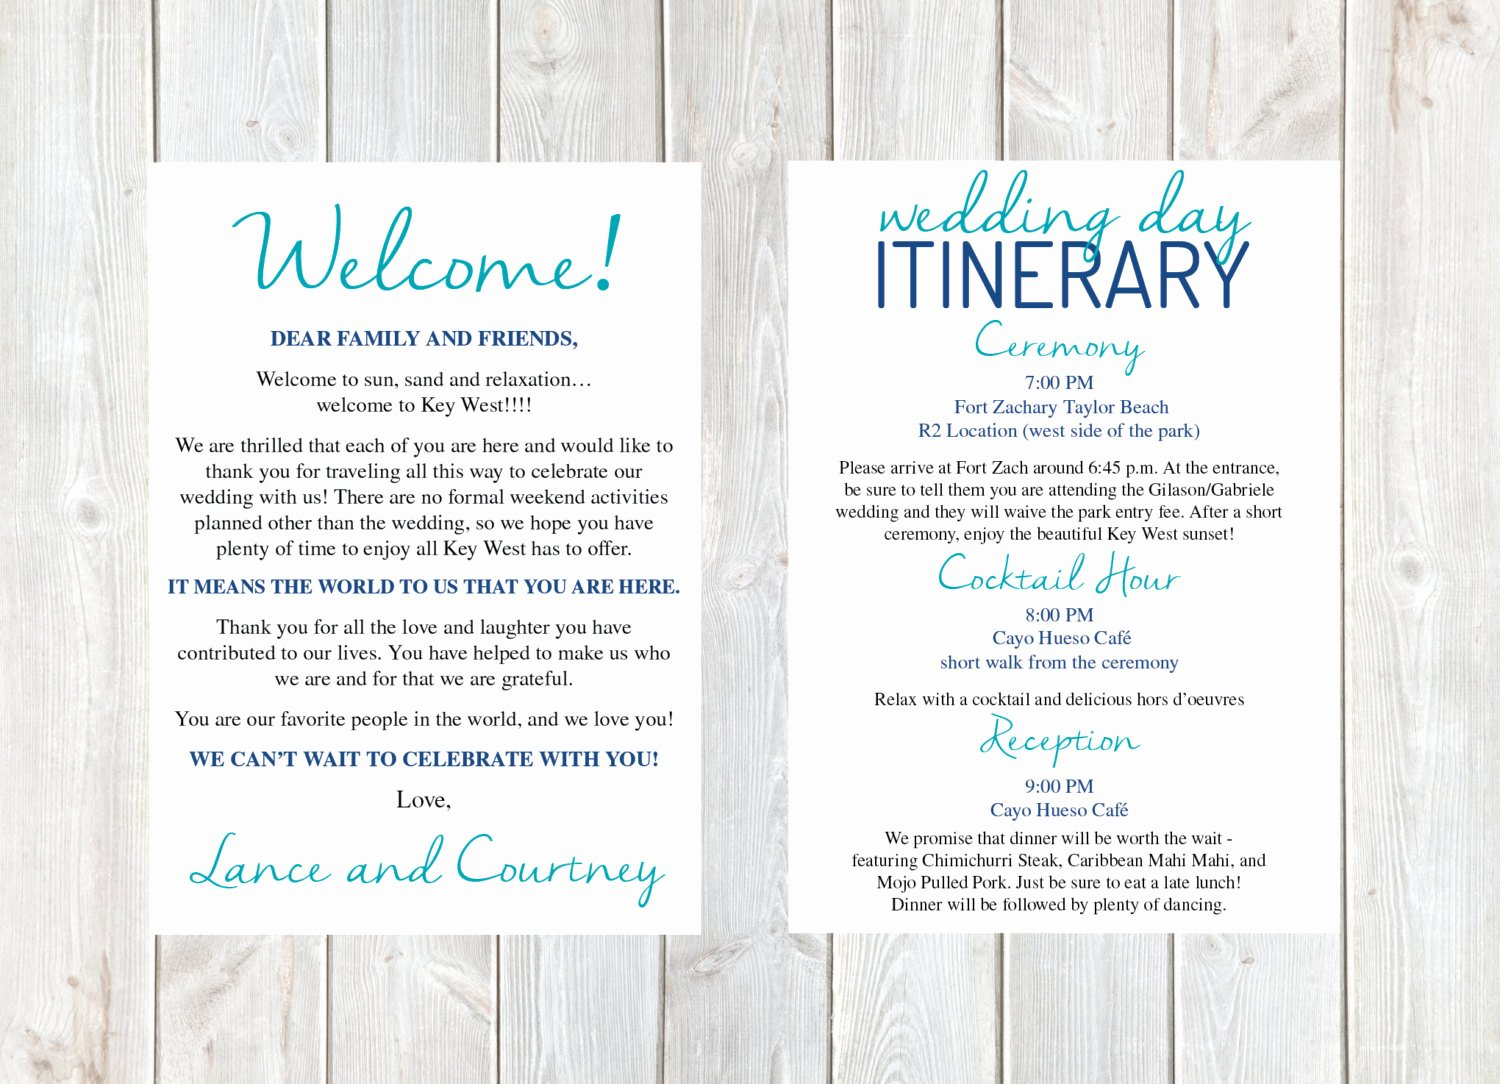 Destination Wedding Itinerary Template Beautiful Wel E Letter Wedding Wel E Letter Wedding Itinerary